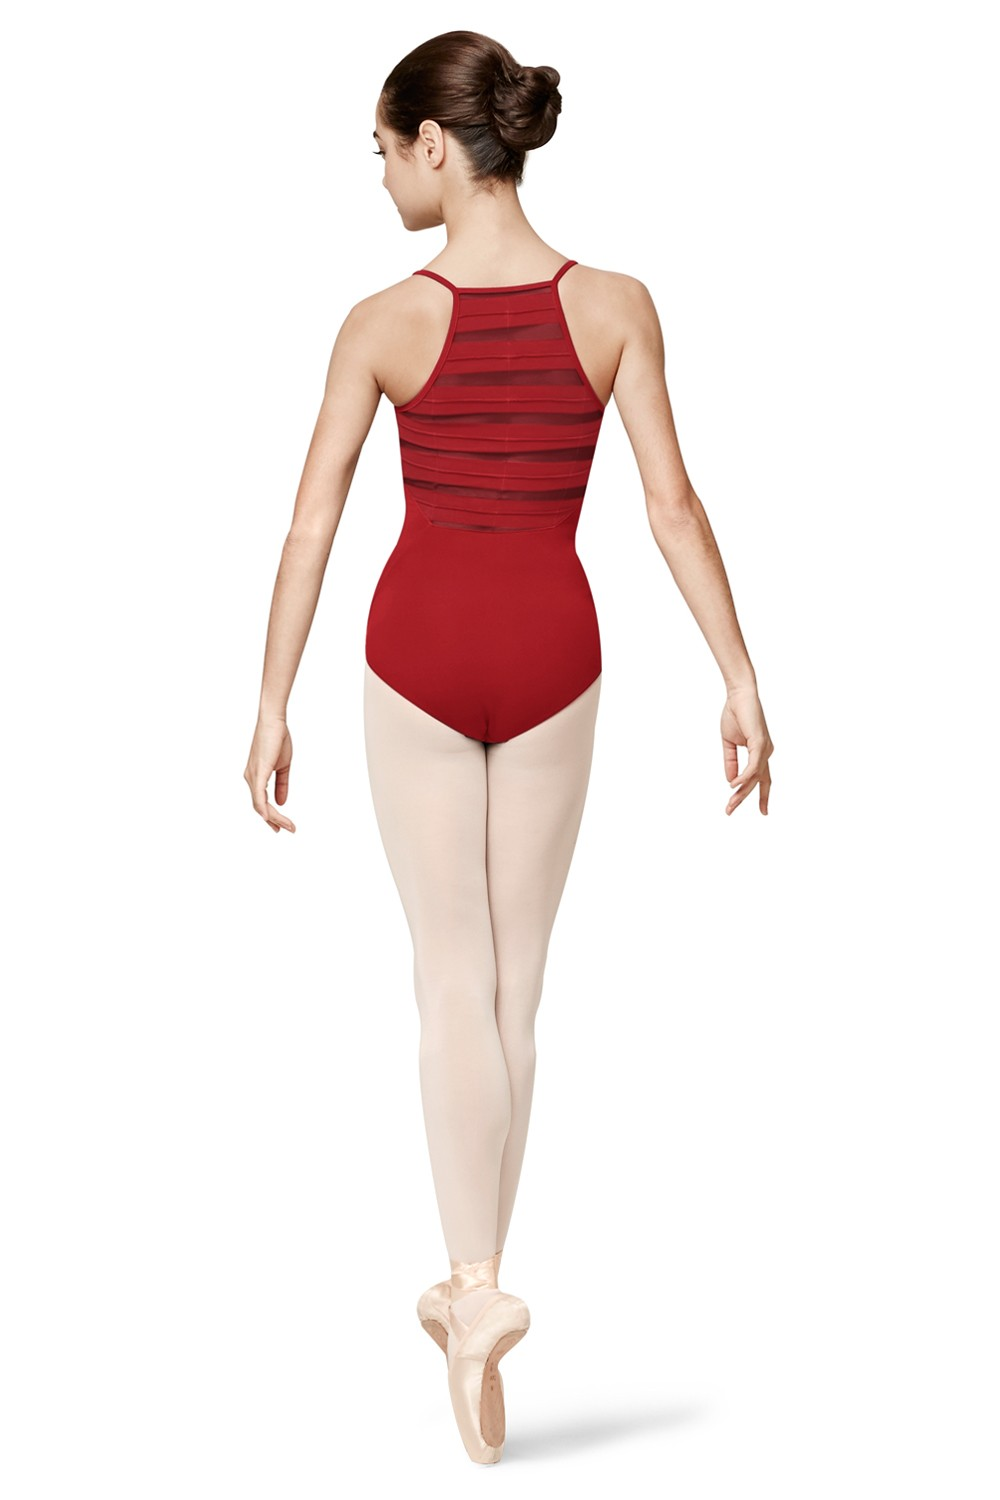 Action Back Camisole Leotard Women's Dance Leotards